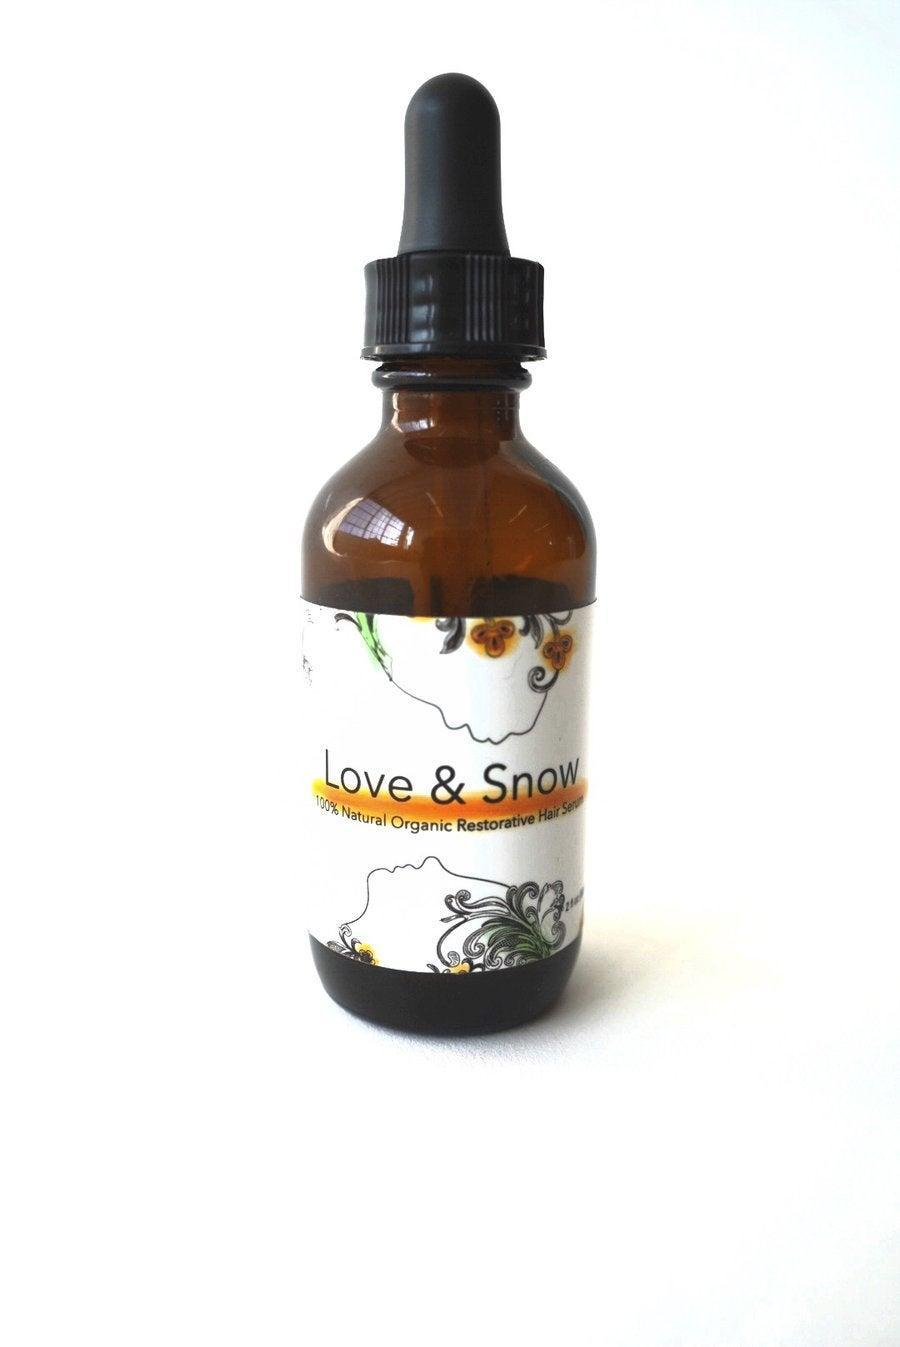 """<h2><a href=""""https://www.loveandsnowhairserum.com/collections/love-snow"""" rel=""""nofollow noopener"""" target=""""_blank"""" data-ylk=""""slk:Love & Snow"""" class=""""link rapid-noclick-resp"""">Love & Snow</a></h2><br>Love & Snow's story began when founder, <a href=""""https://www.loveandsnowhairserum.com/pages/about-us"""" rel=""""nofollow noopener"""" target=""""_blank"""" data-ylk=""""slk:Love White"""" class=""""link rapid-noclick-resp"""">Love White</a>, decided to solve her frustrating scalp issues with essential oils. Her Bachelor's and Master's degrees in Clinical Psychology and Public Health helped her perfect a 100% organic hair serum that fully moisturizes the scalp without leaving a greasy mess or any added irritation. <br><br>You can snag her Restorative Hair and Scalp Serum or her new Intensive Hair and Scalp Tonic at her website. <br><br>Shop <em><strong><a href=""""https://www.loveandsnowhairserum.com/collections/love-snow"""" rel=""""nofollow noopener"""" target=""""_blank"""" data-ylk=""""slk:Love & Snow"""" class=""""link rapid-noclick-resp"""">Love & Snow</a></strong></em><br><br><br><br><strong>Love and Snow</strong> Restorative Hair and Scalp Serum, $, available at <a href=""""https://go.skimresources.com/?id=30283X879131&url=https%3A%2F%2Ffave.co%2F3l1OTnM"""" rel=""""nofollow noopener"""" target=""""_blank"""" data-ylk=""""slk:Love and Snow"""" class=""""link rapid-noclick-resp"""">Love and Snow</a>"""